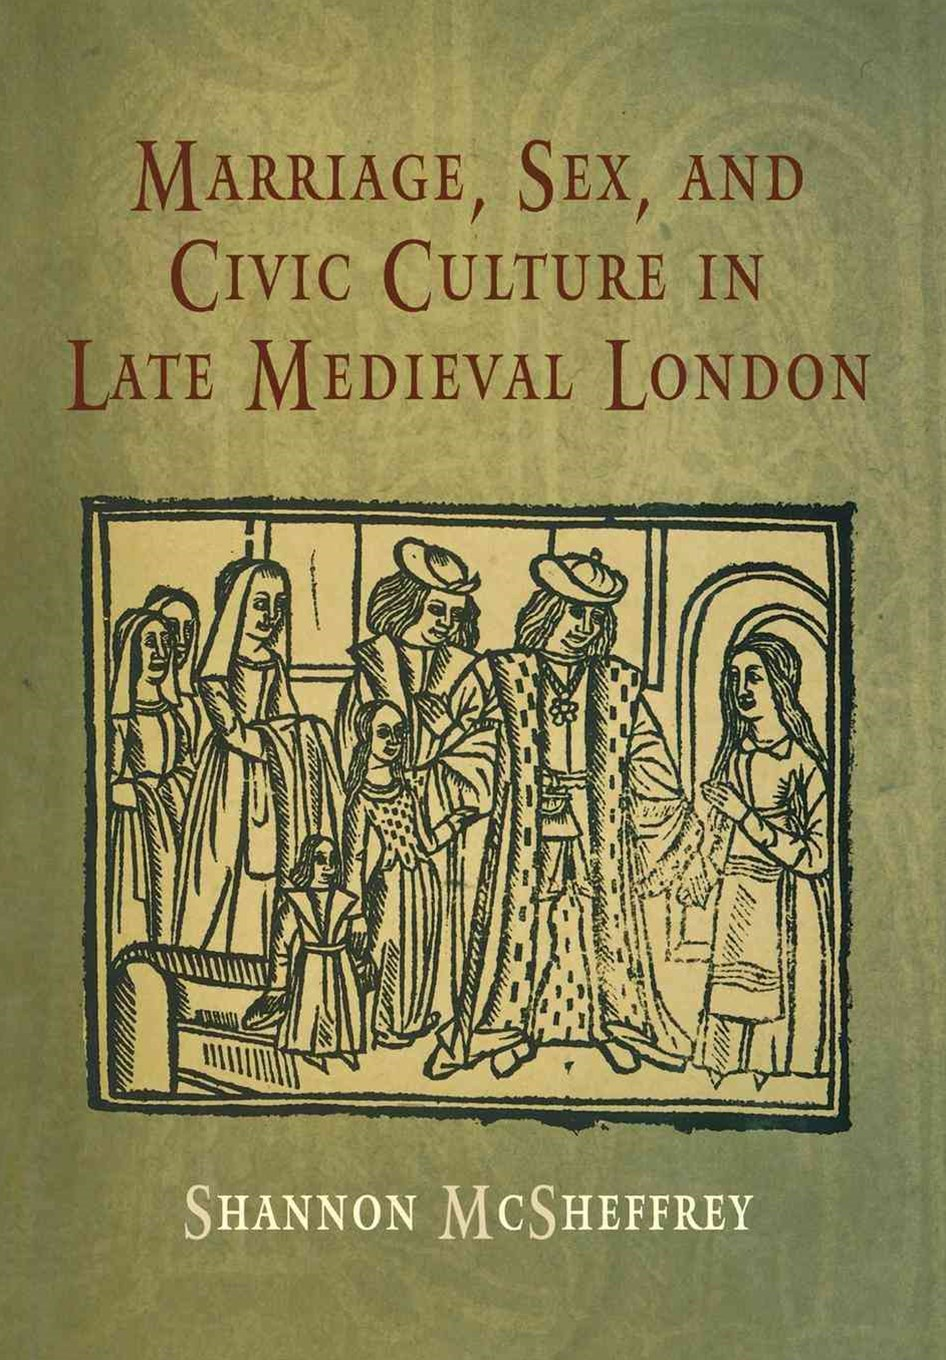 Marriage, Sex and Civic Culture in Late Medieval London